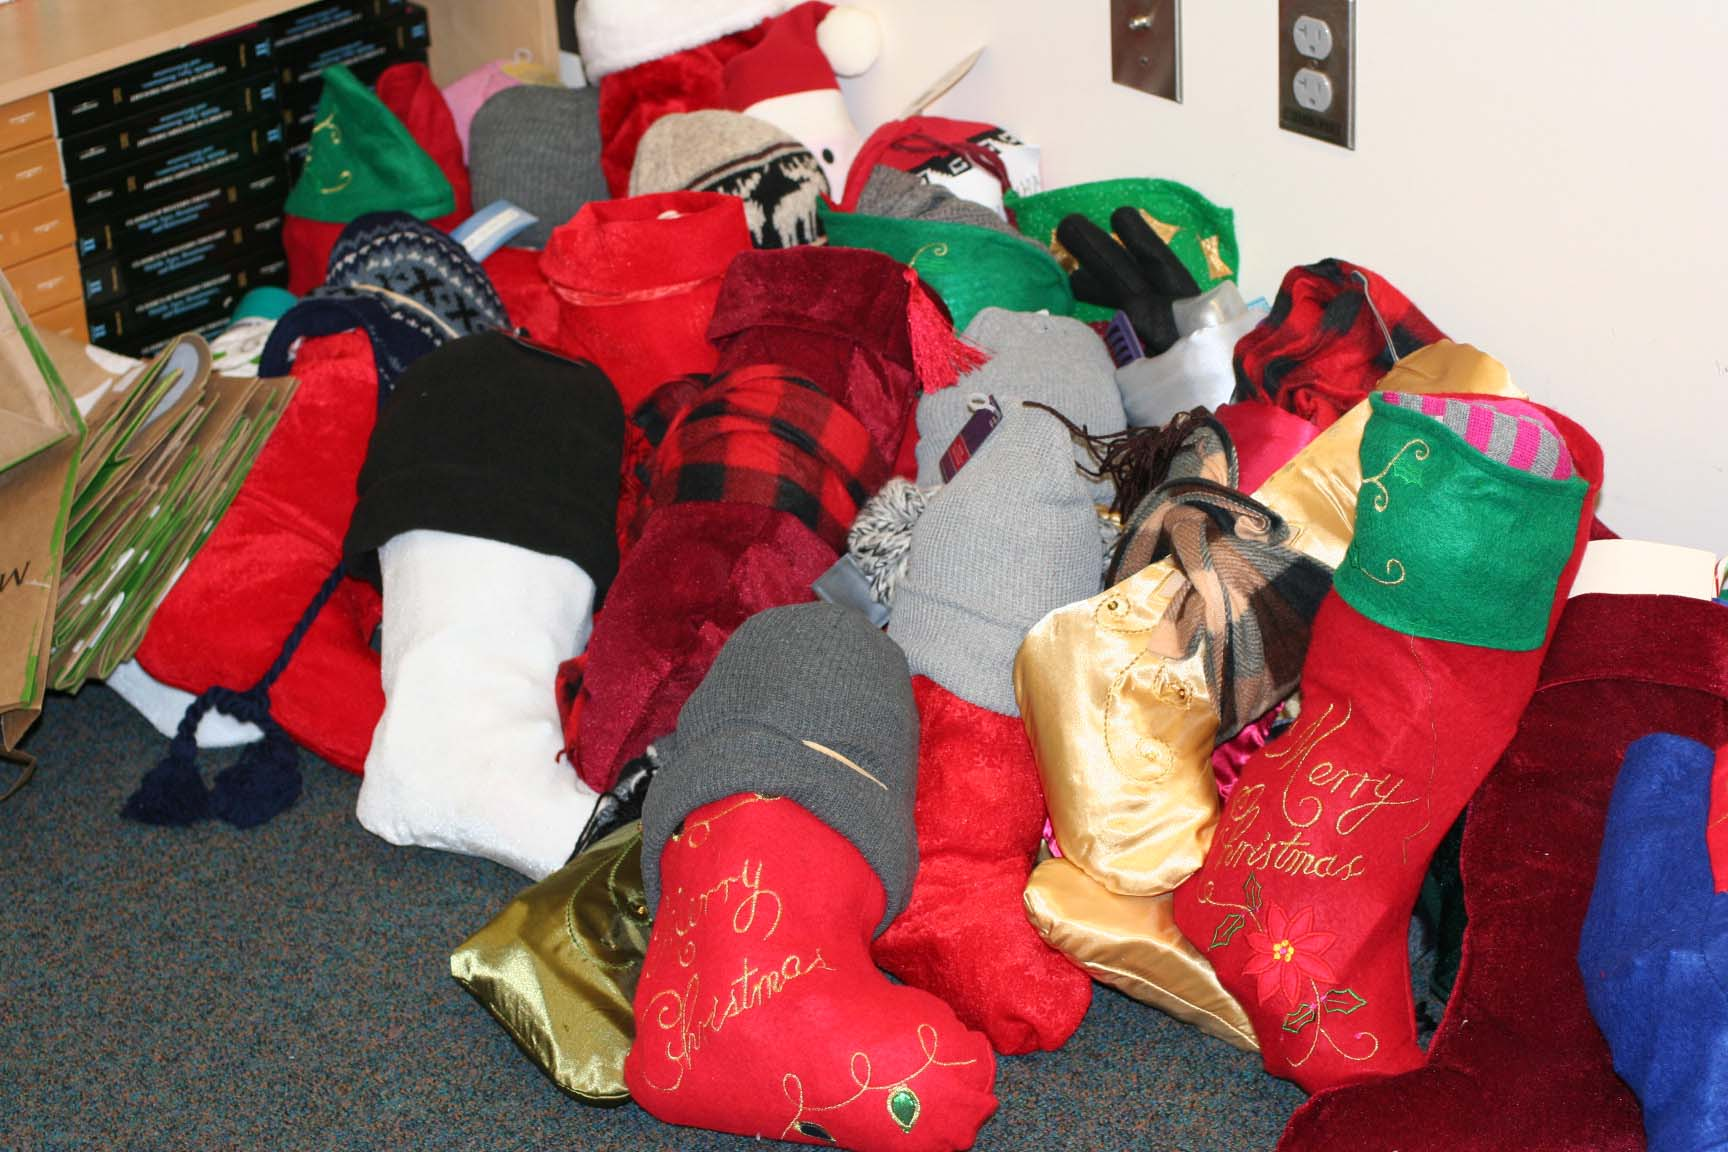 Operation Christmas Stocking provides homeless with much needed items